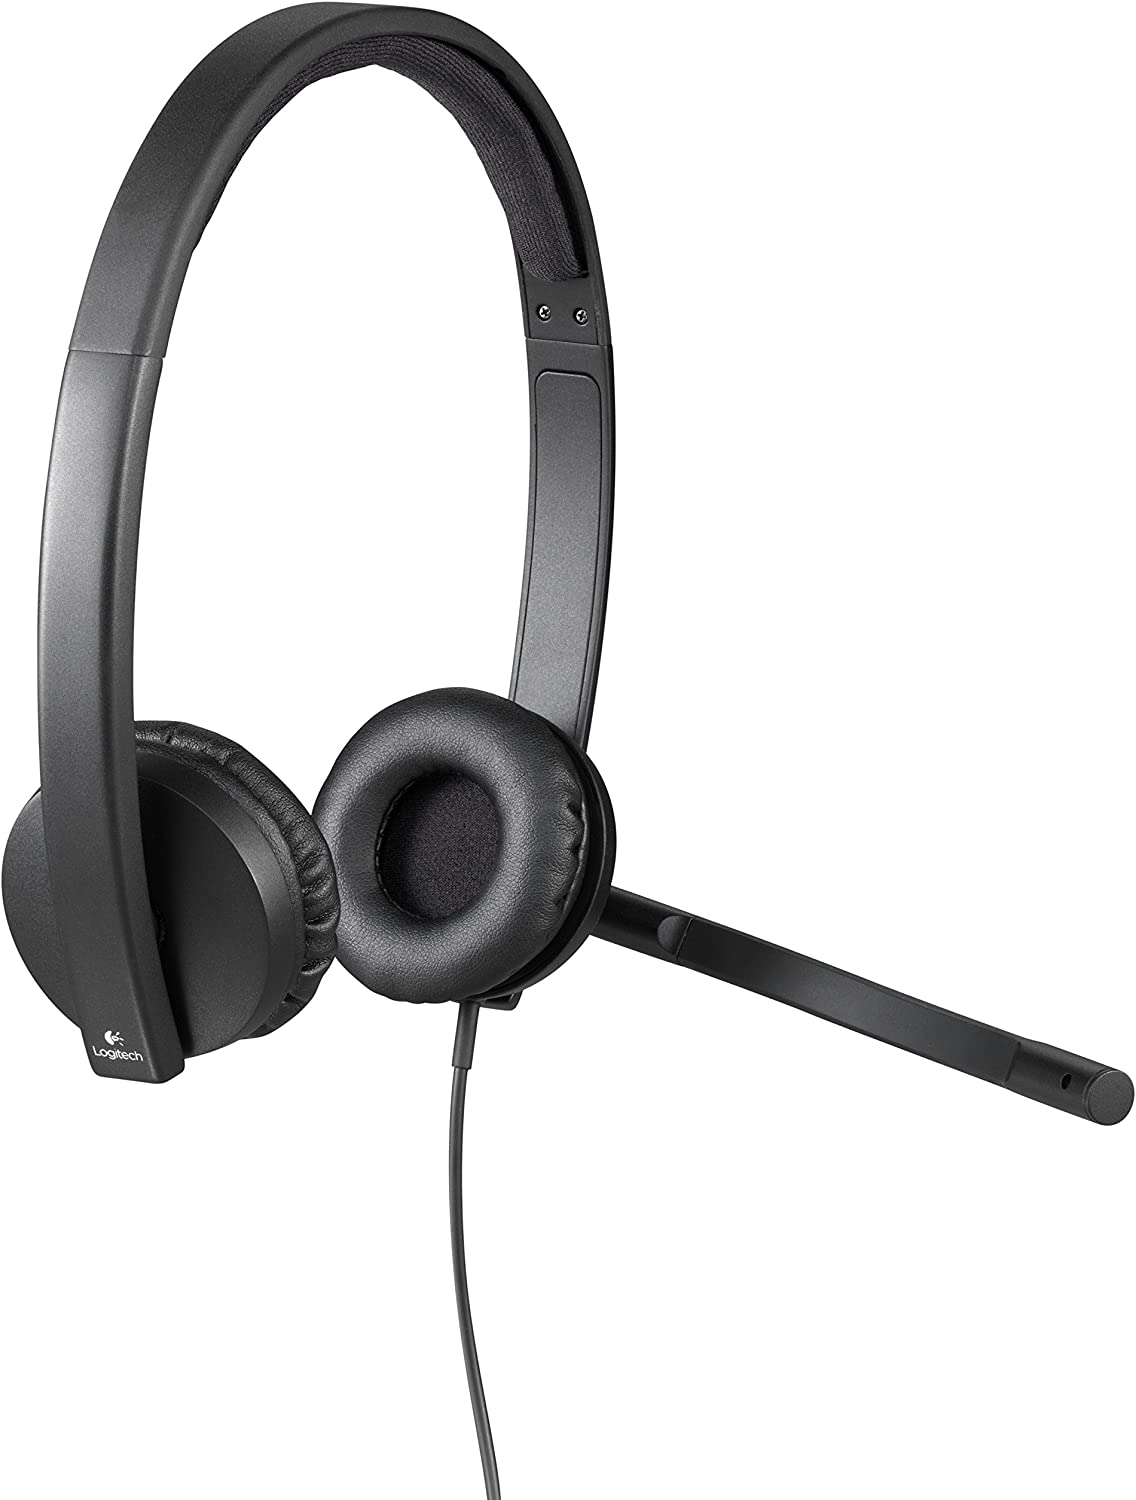 Logitech USB H570e Corded Single-Ear Headset